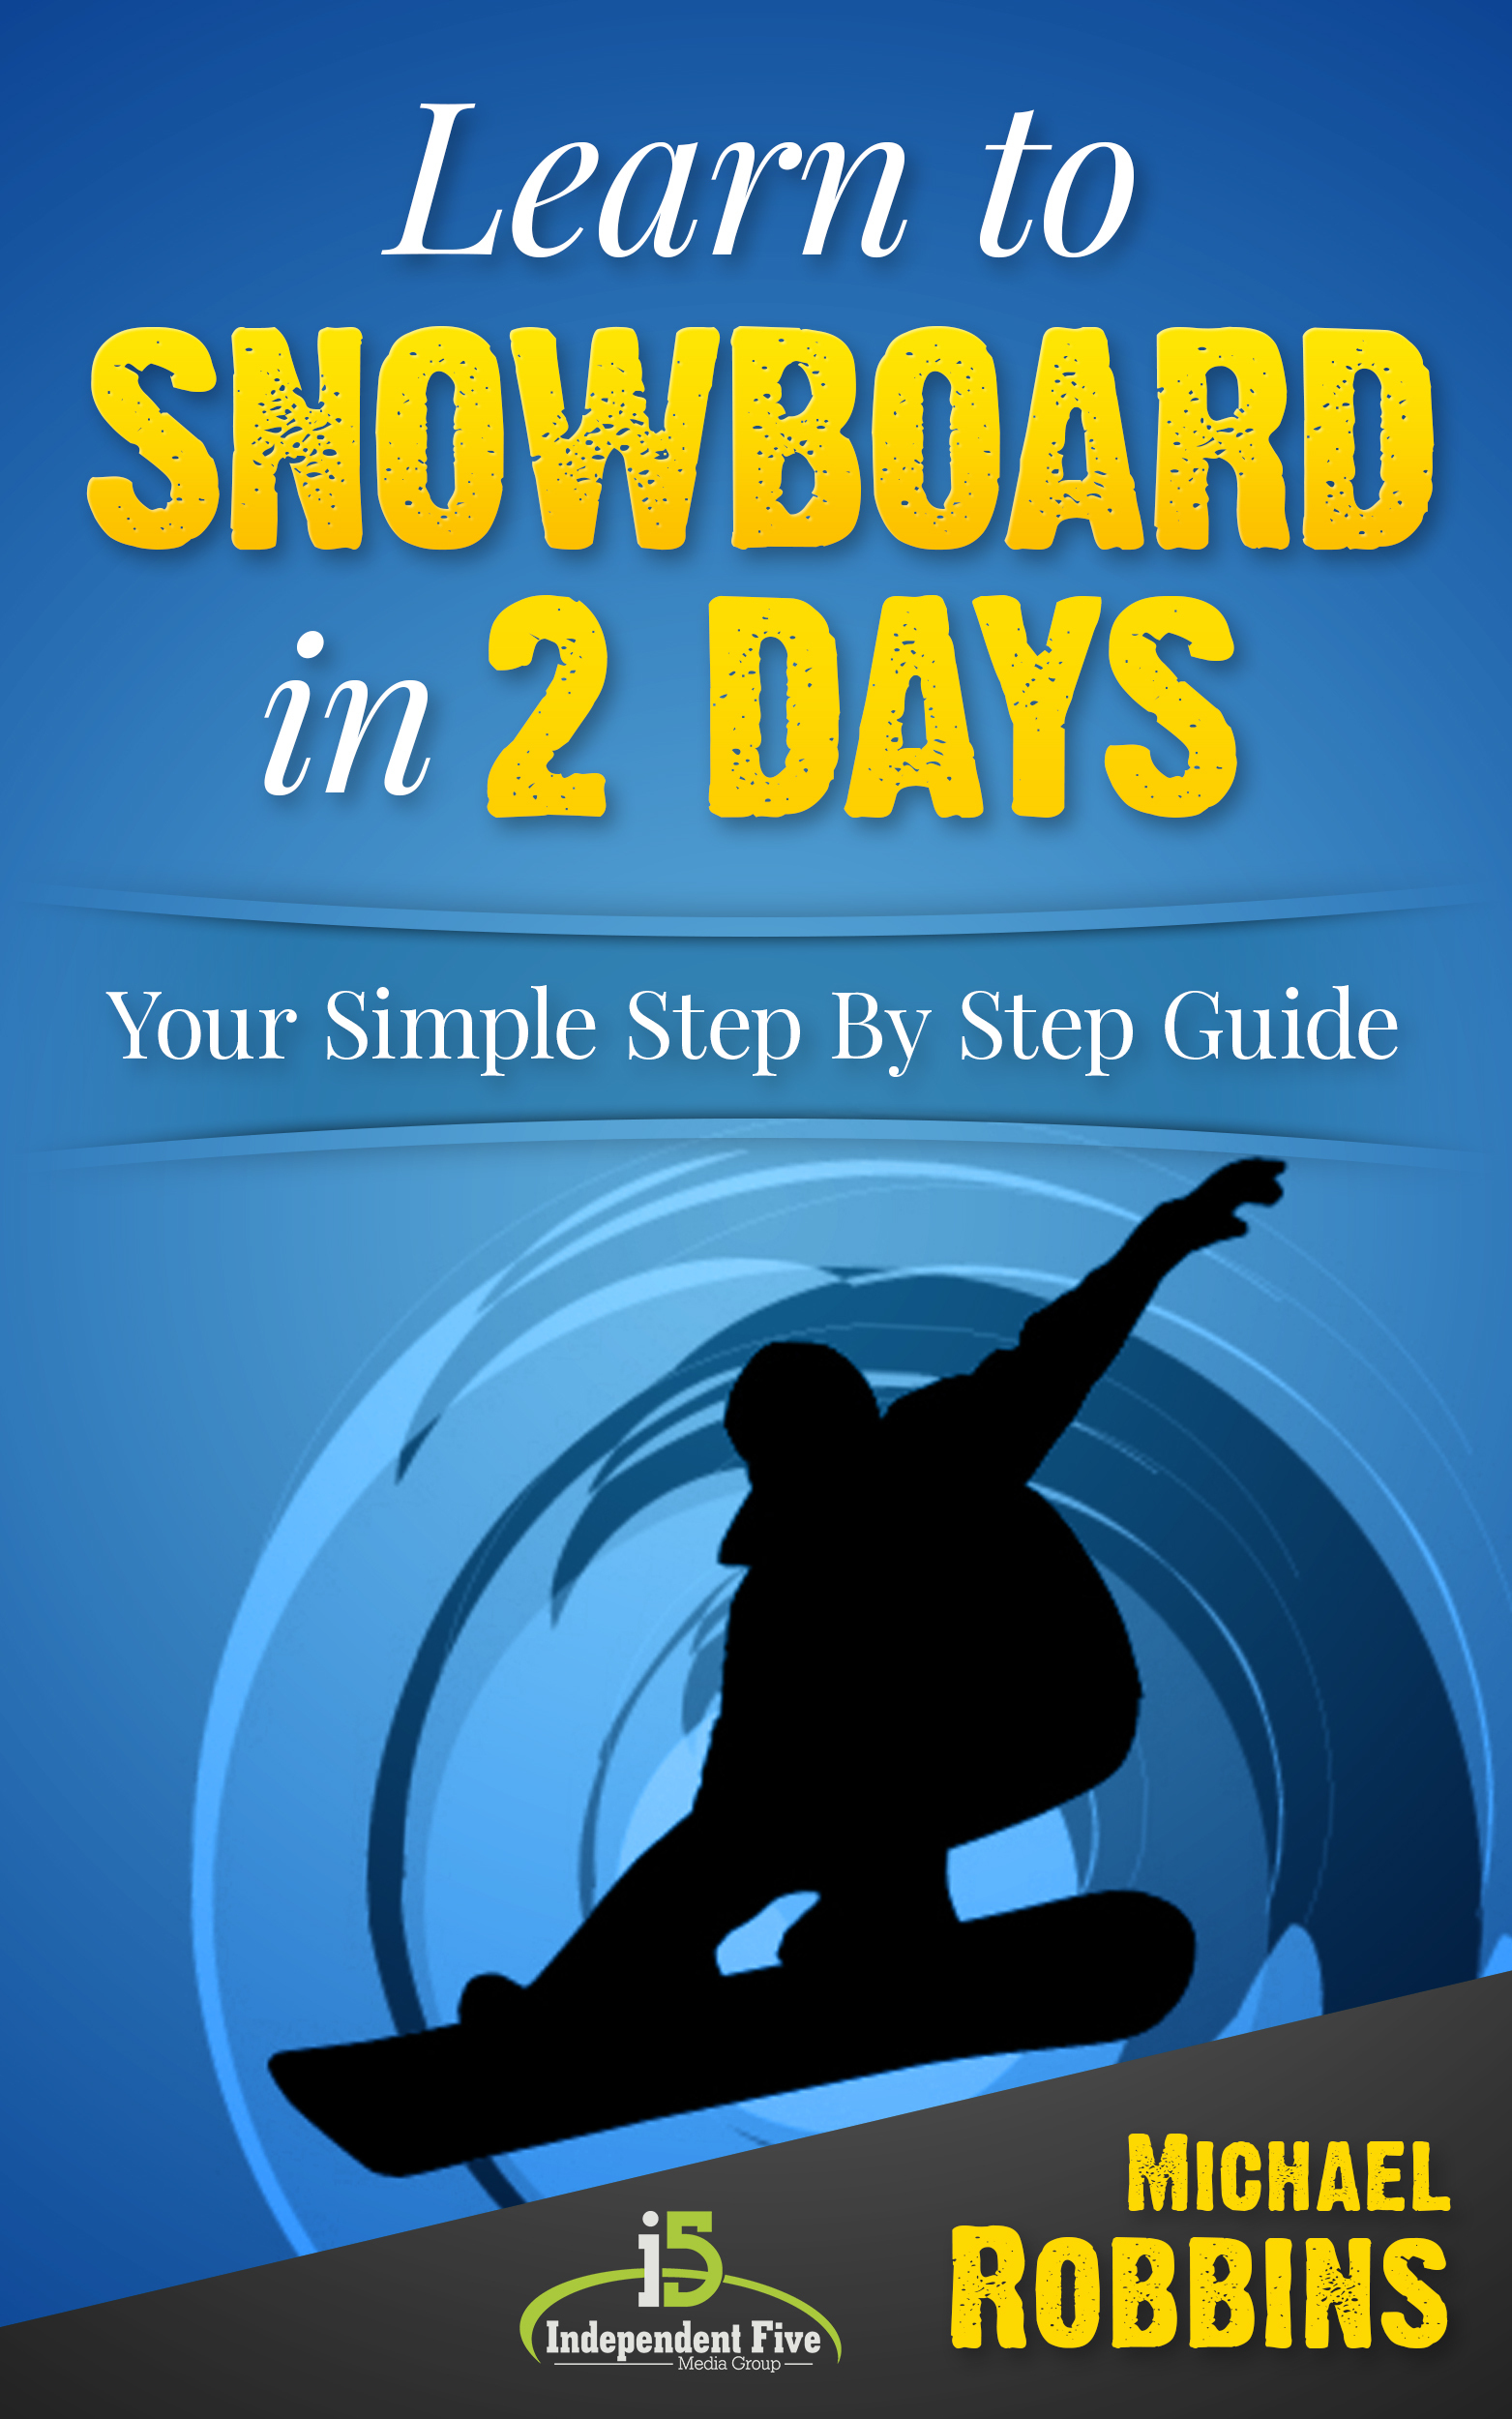 Learn to Snowboard in 2 Days: Your Simple Step  by  Step Guide to Snowboarding Success! by Michael Robbins